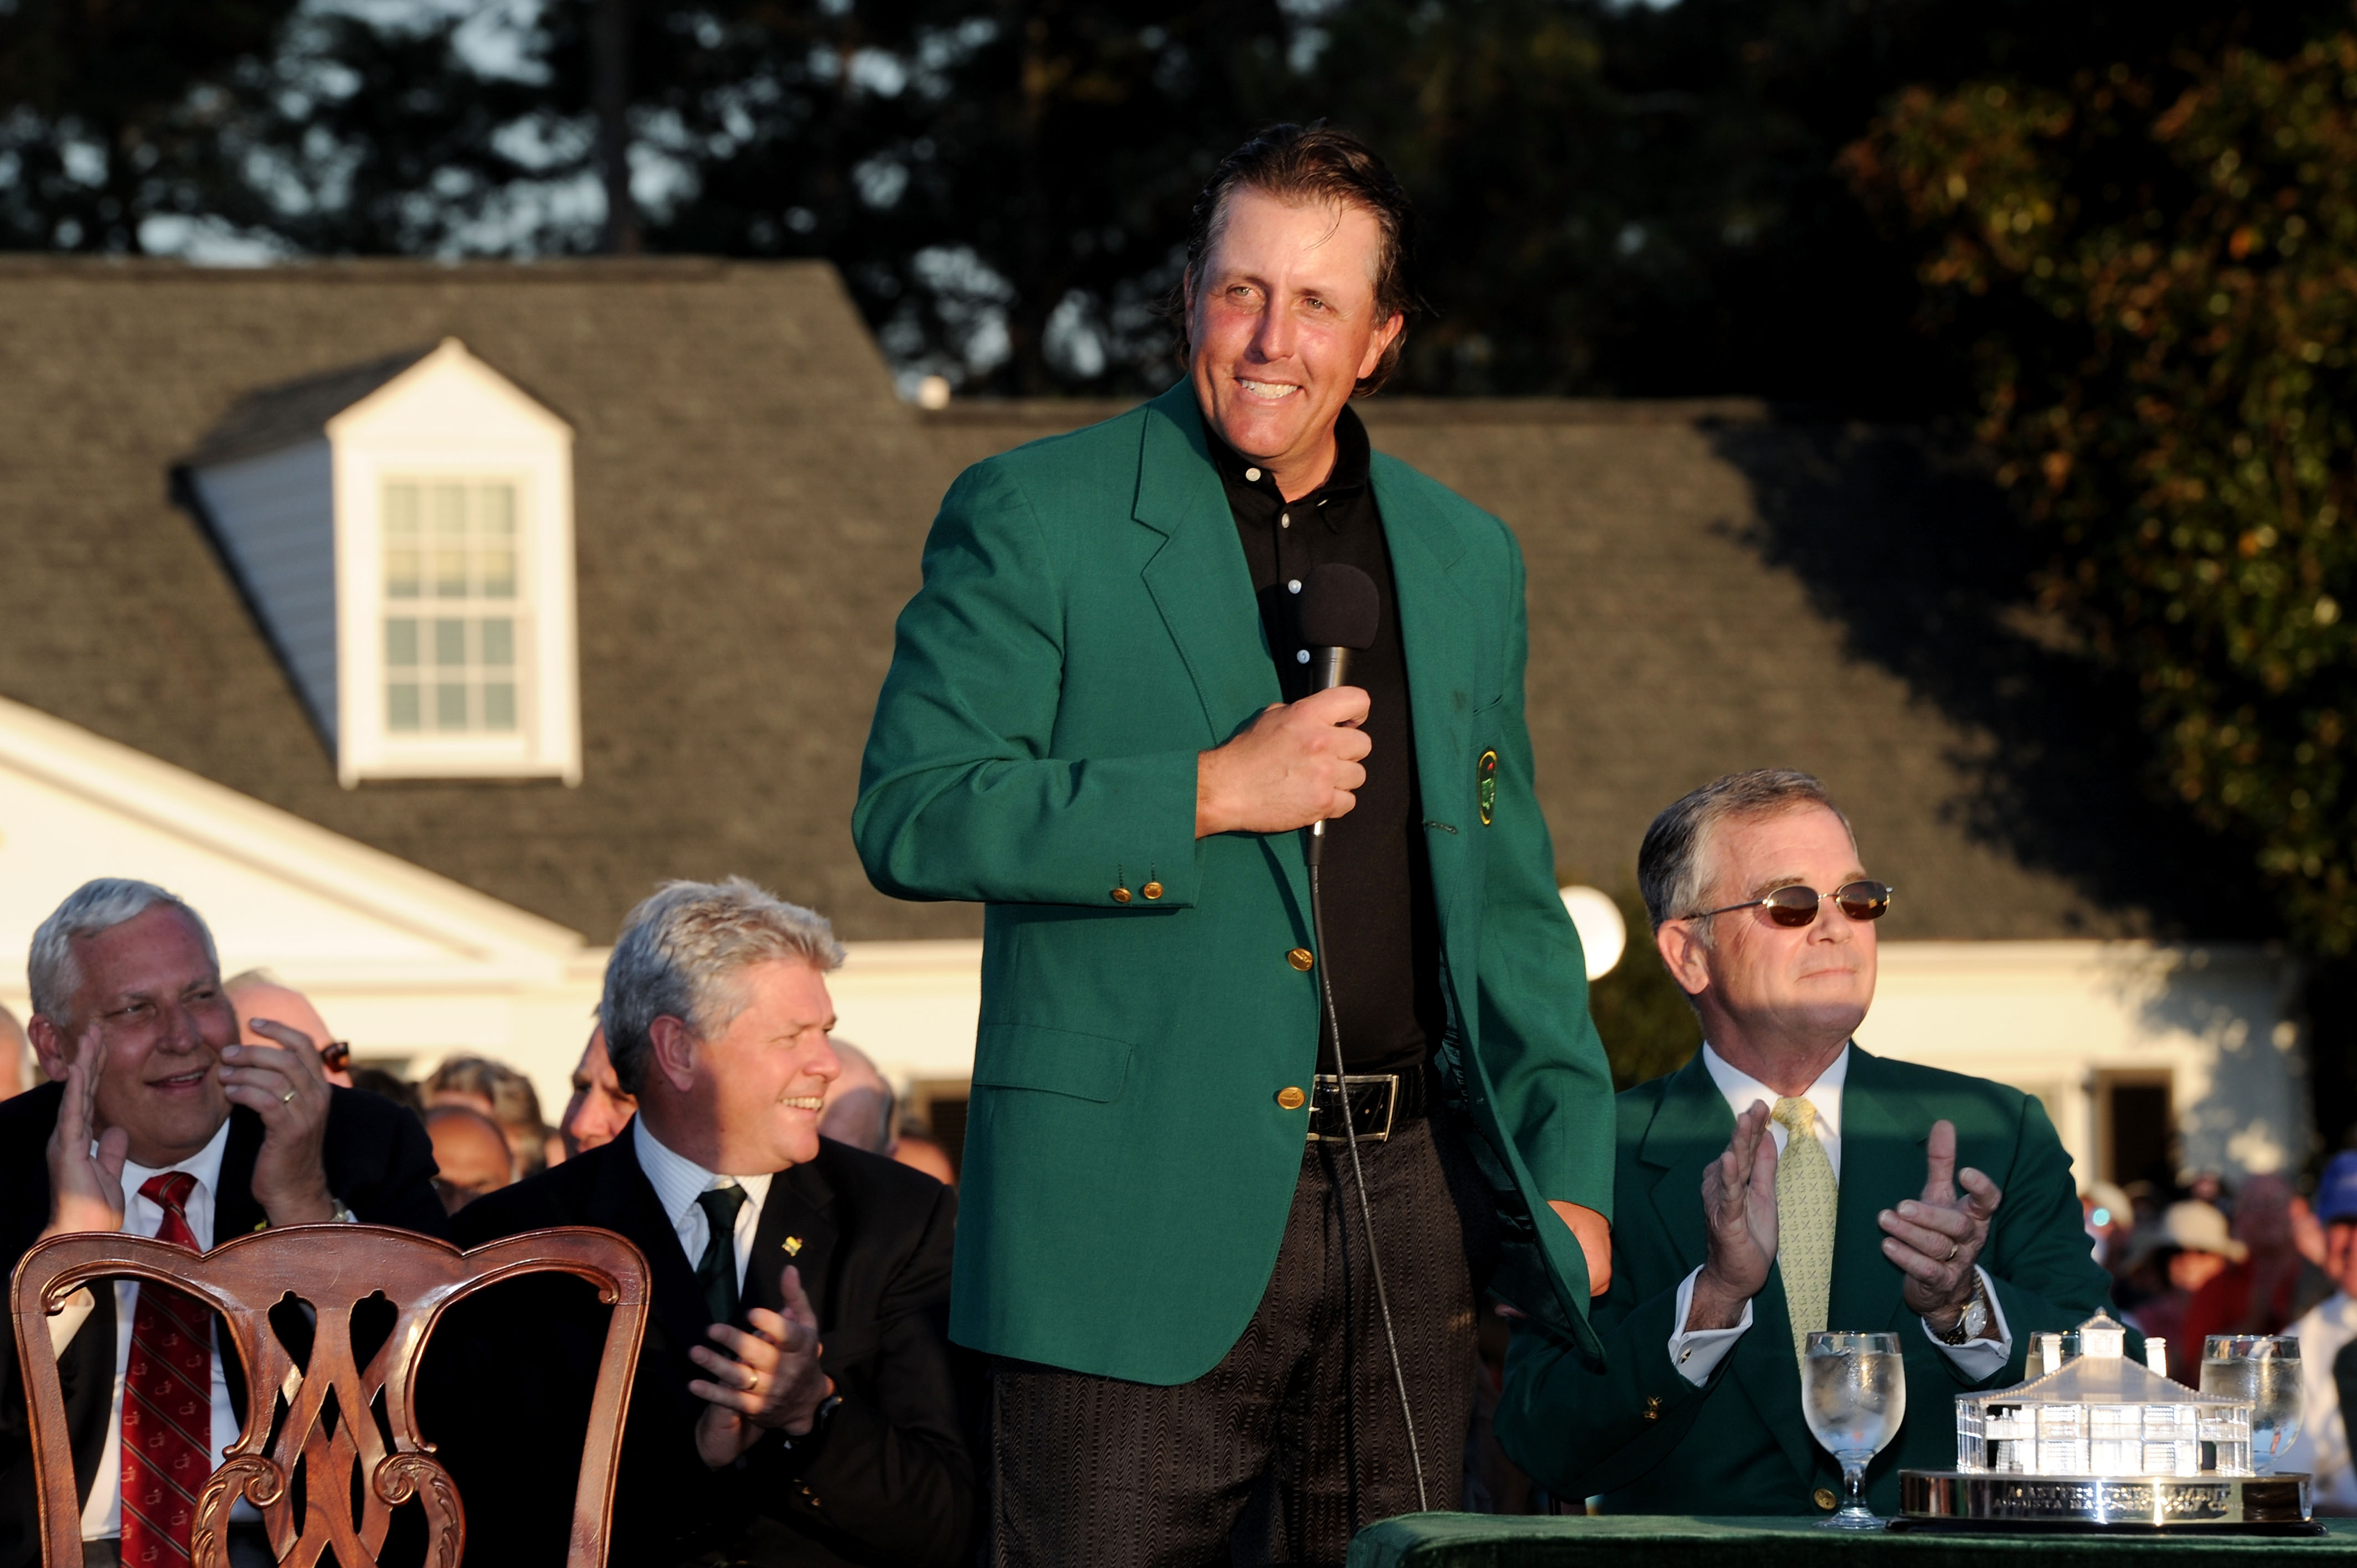 AUGUSTA, GA - APRIL 11:  Phil Mickelson speaks to the gallery as Augusta National Chairman William Porter 'Billy' Payne (R) looks on during the green jacket presentation after the final round of the 2010 Masters Tournament at Augusta National Golf Club on